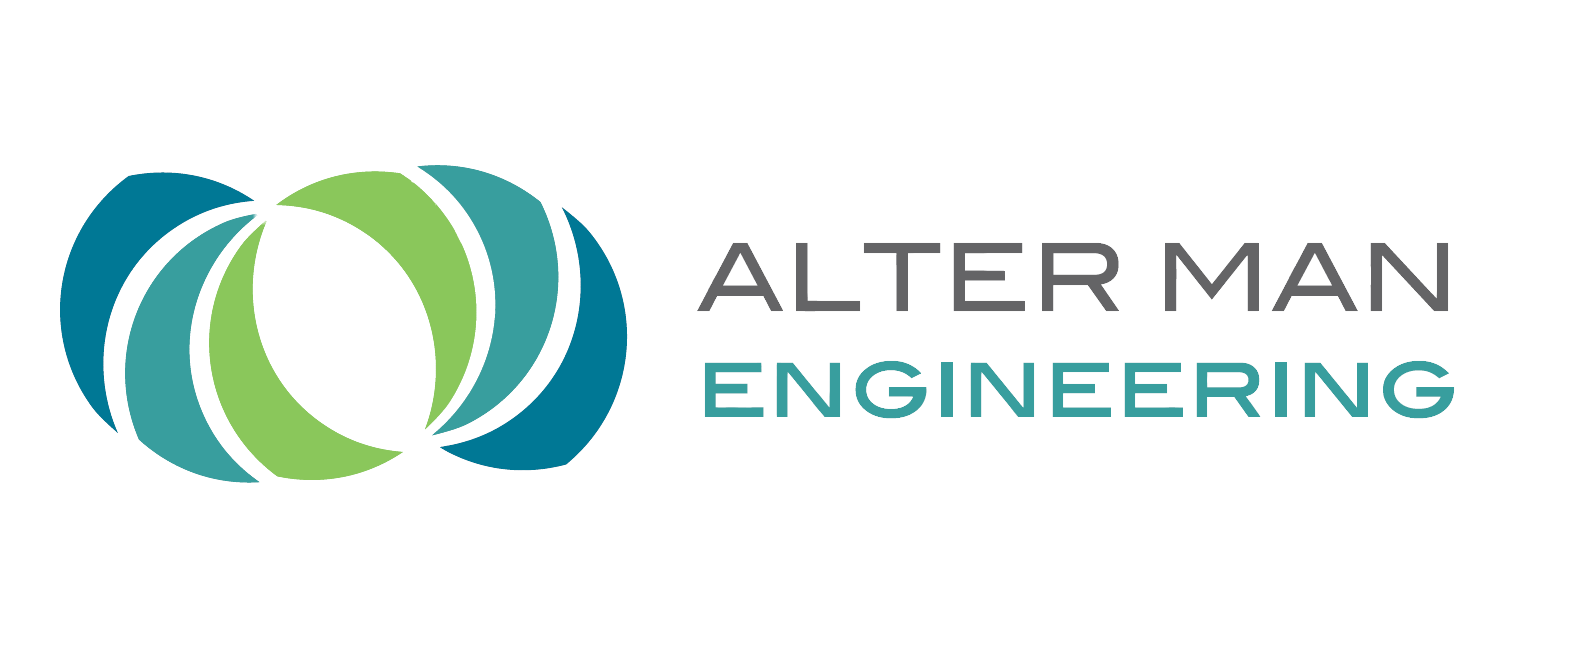 alterman engineering